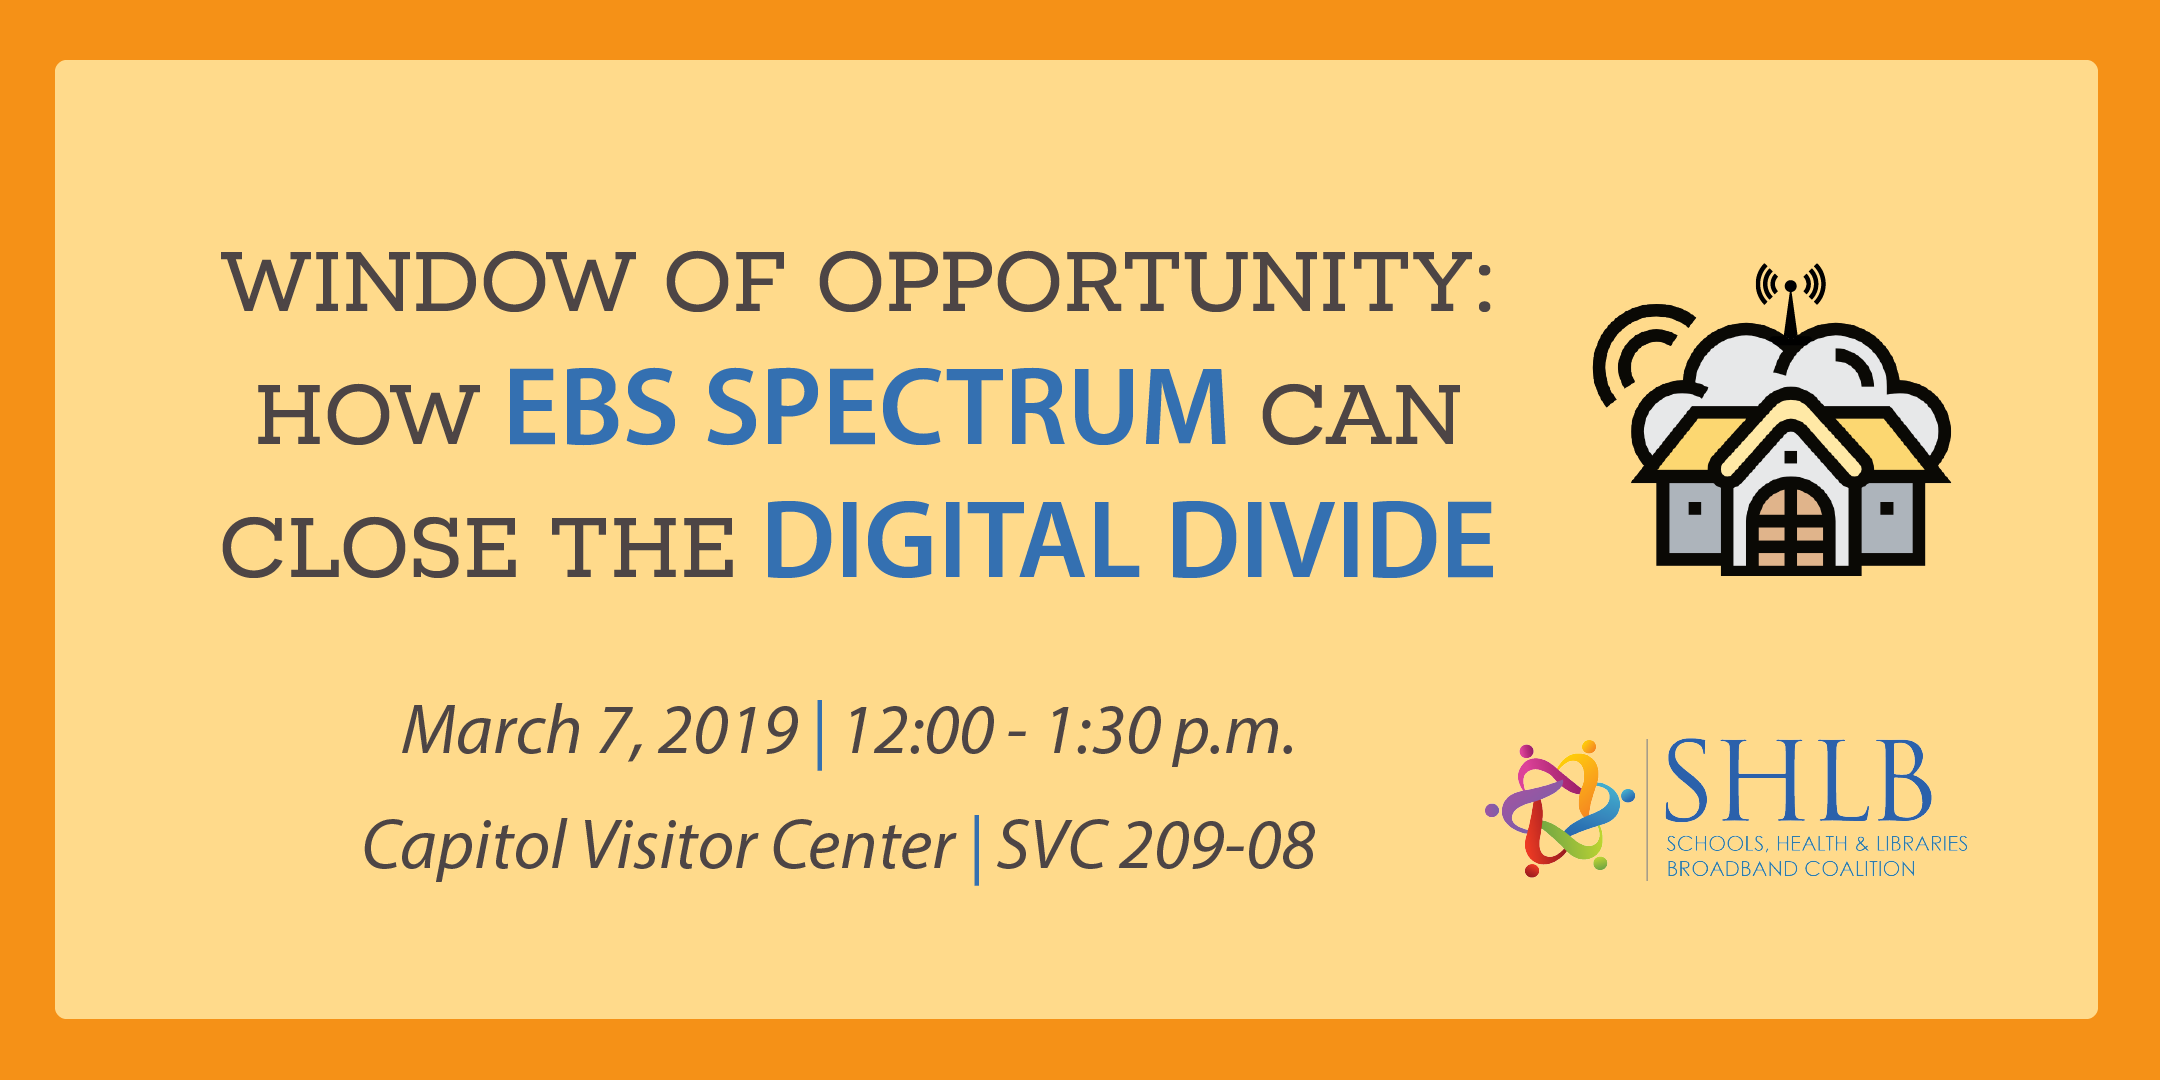 Window of Opportunity: How EBS Spectrum Can Close the Digital Divide